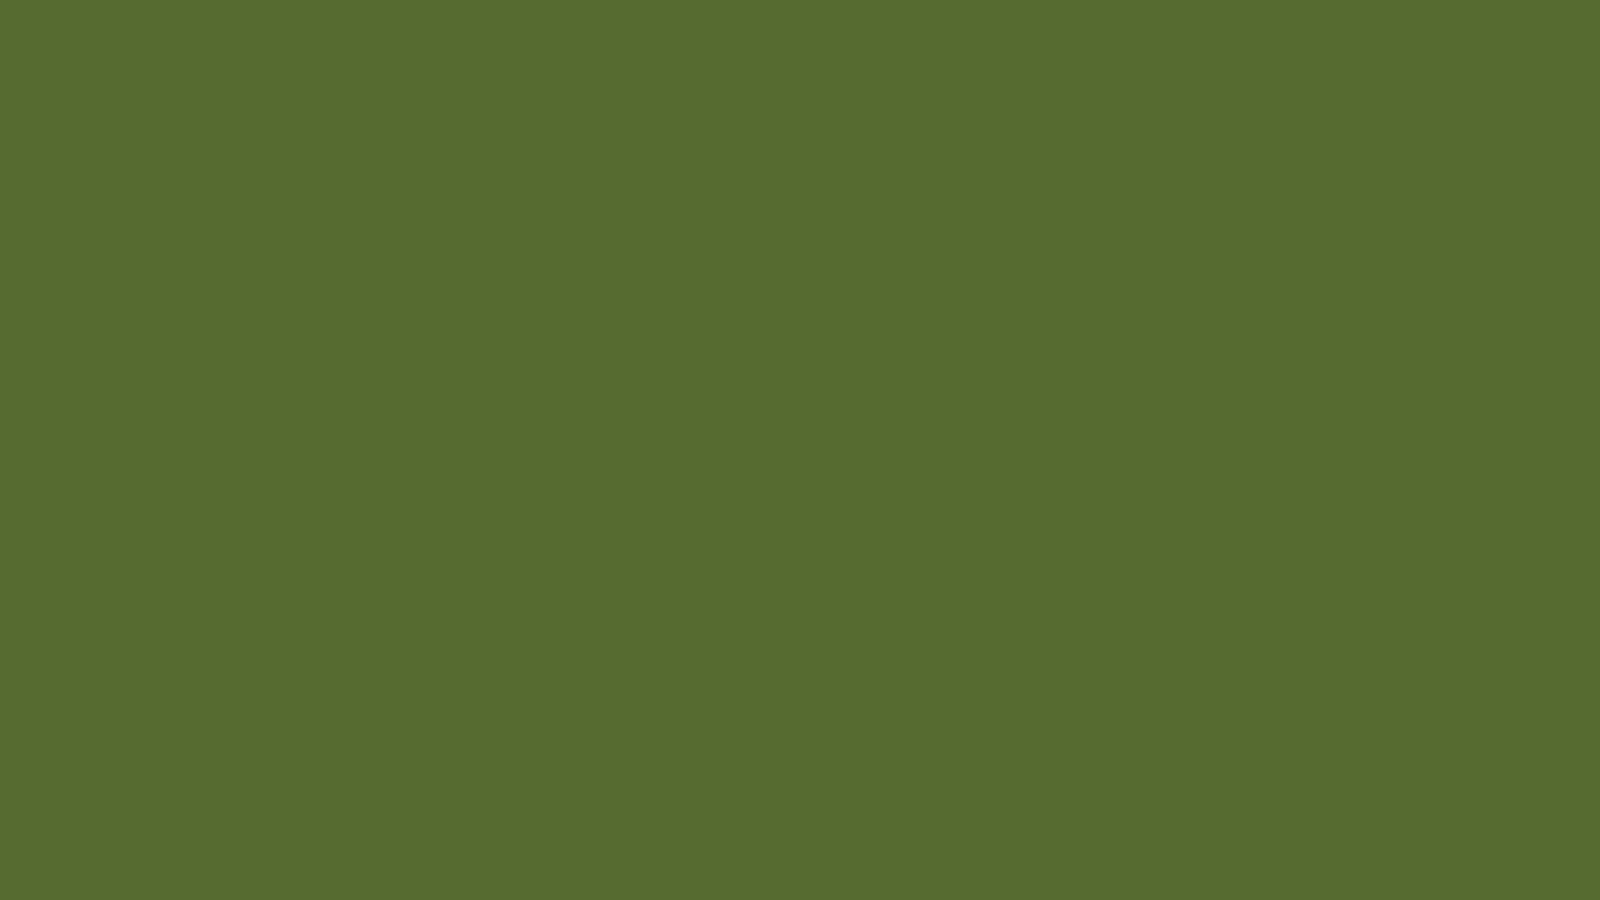 1600x900 Dark Olive Green Solid Color Background